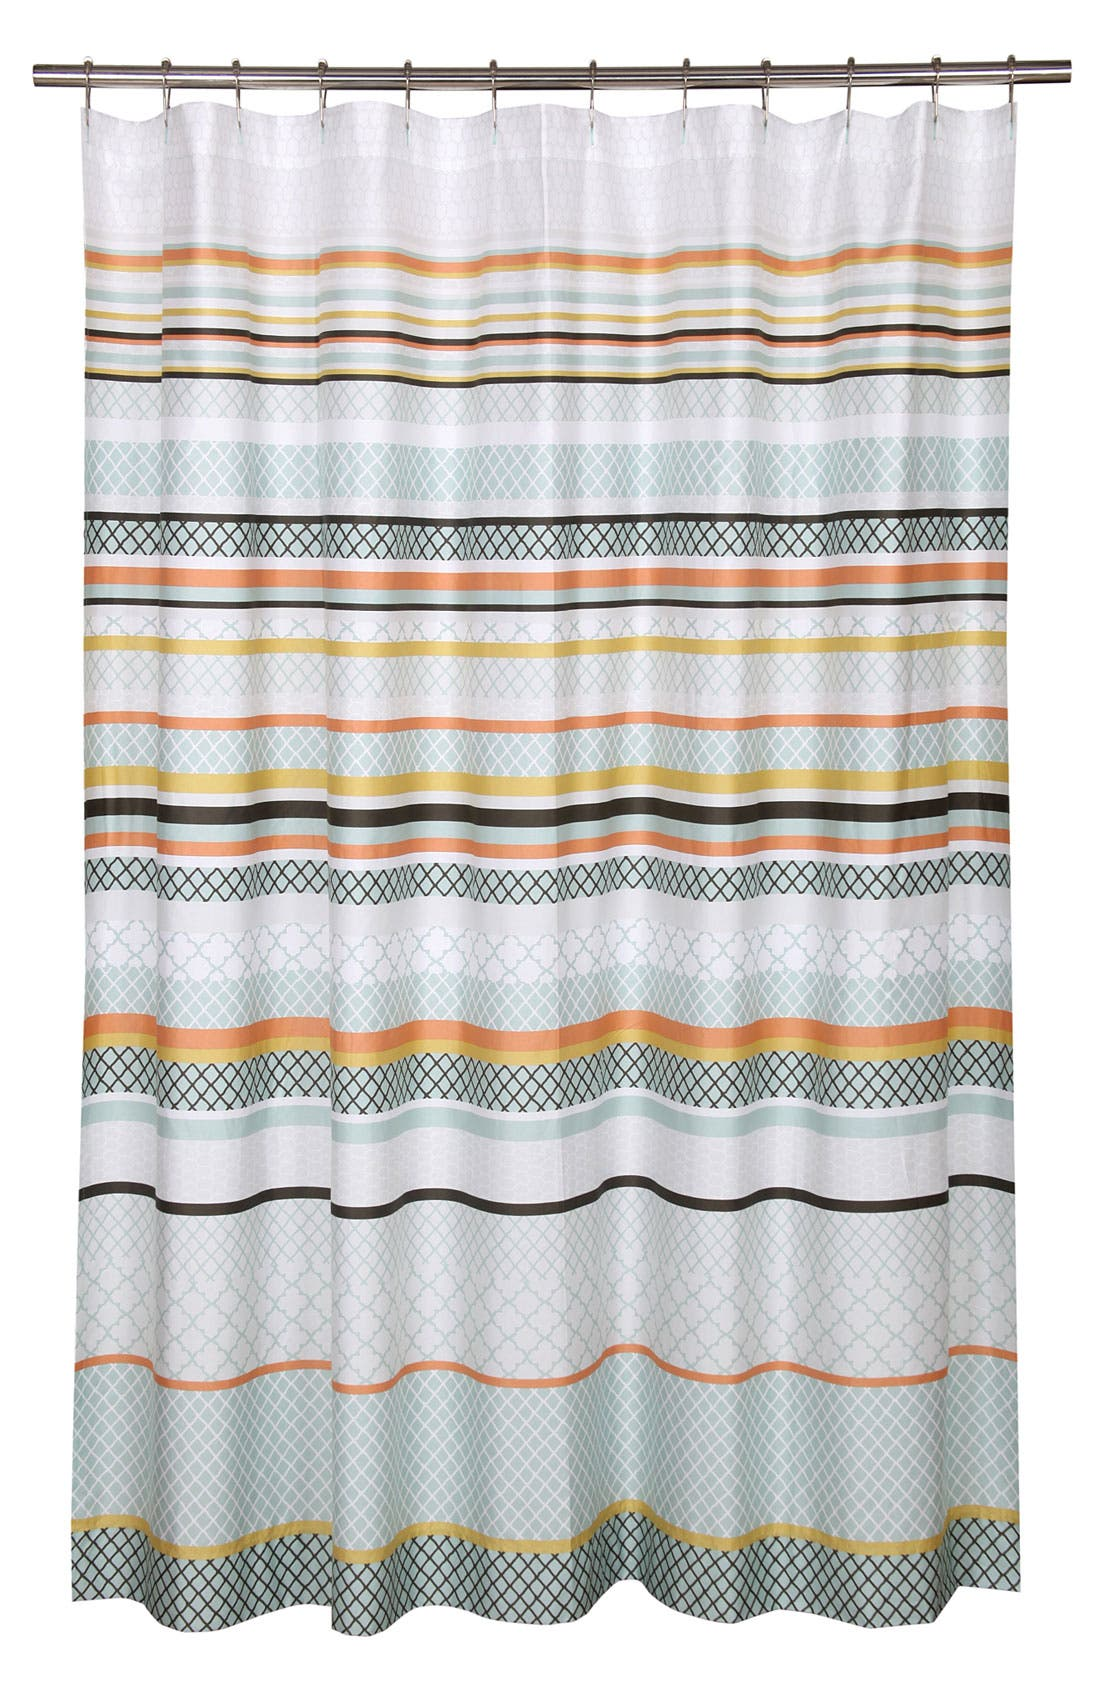 Main Image - Blissliving Home 'Recoleta' Shower Curtain